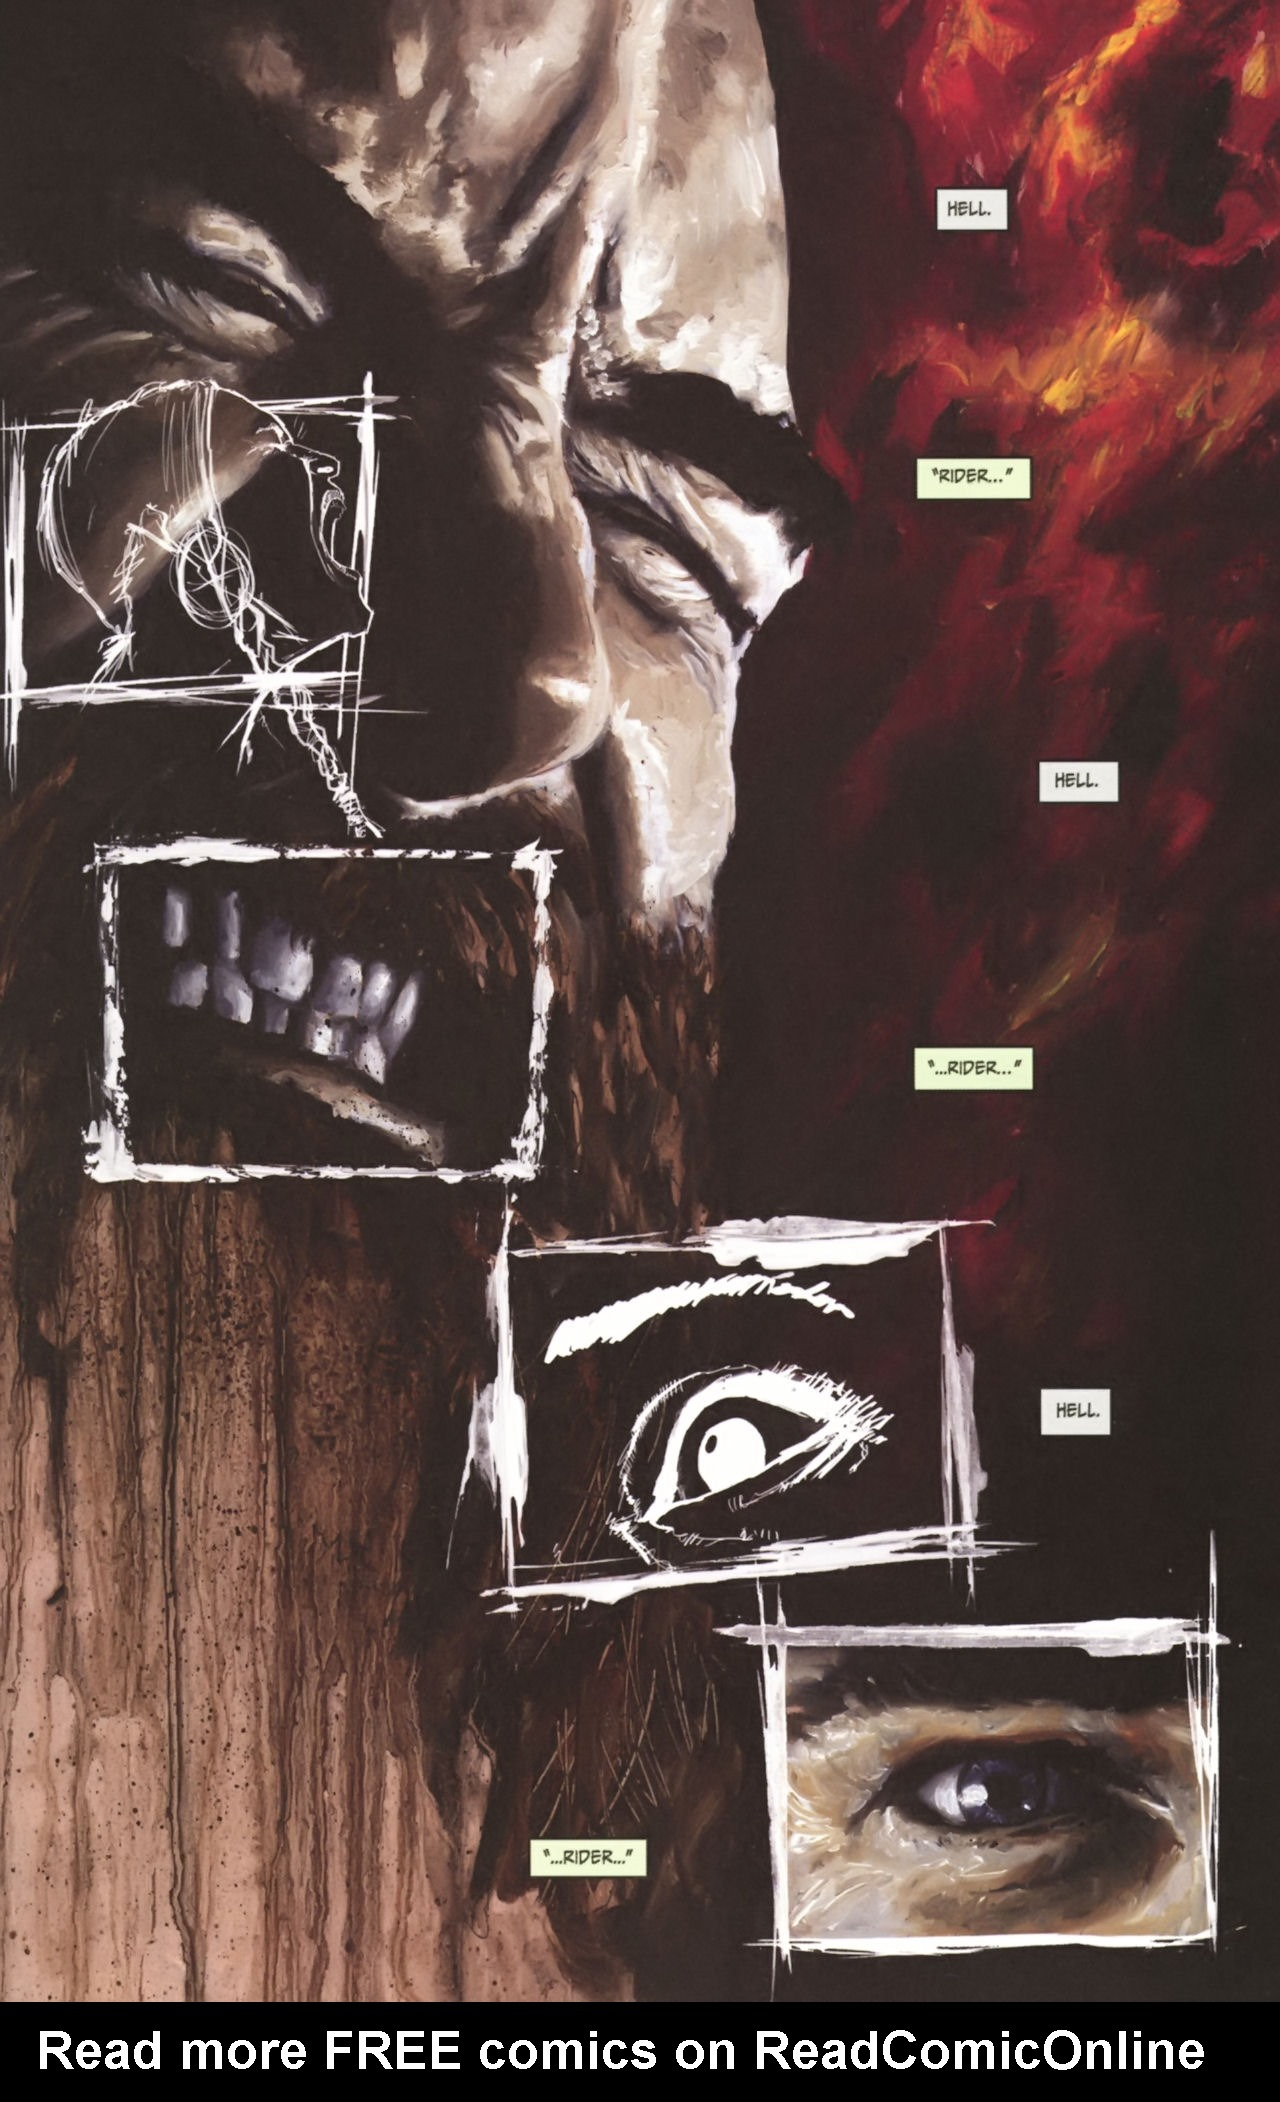 Read online Silent Hill: Past Life comic -  Issue #1 - 4